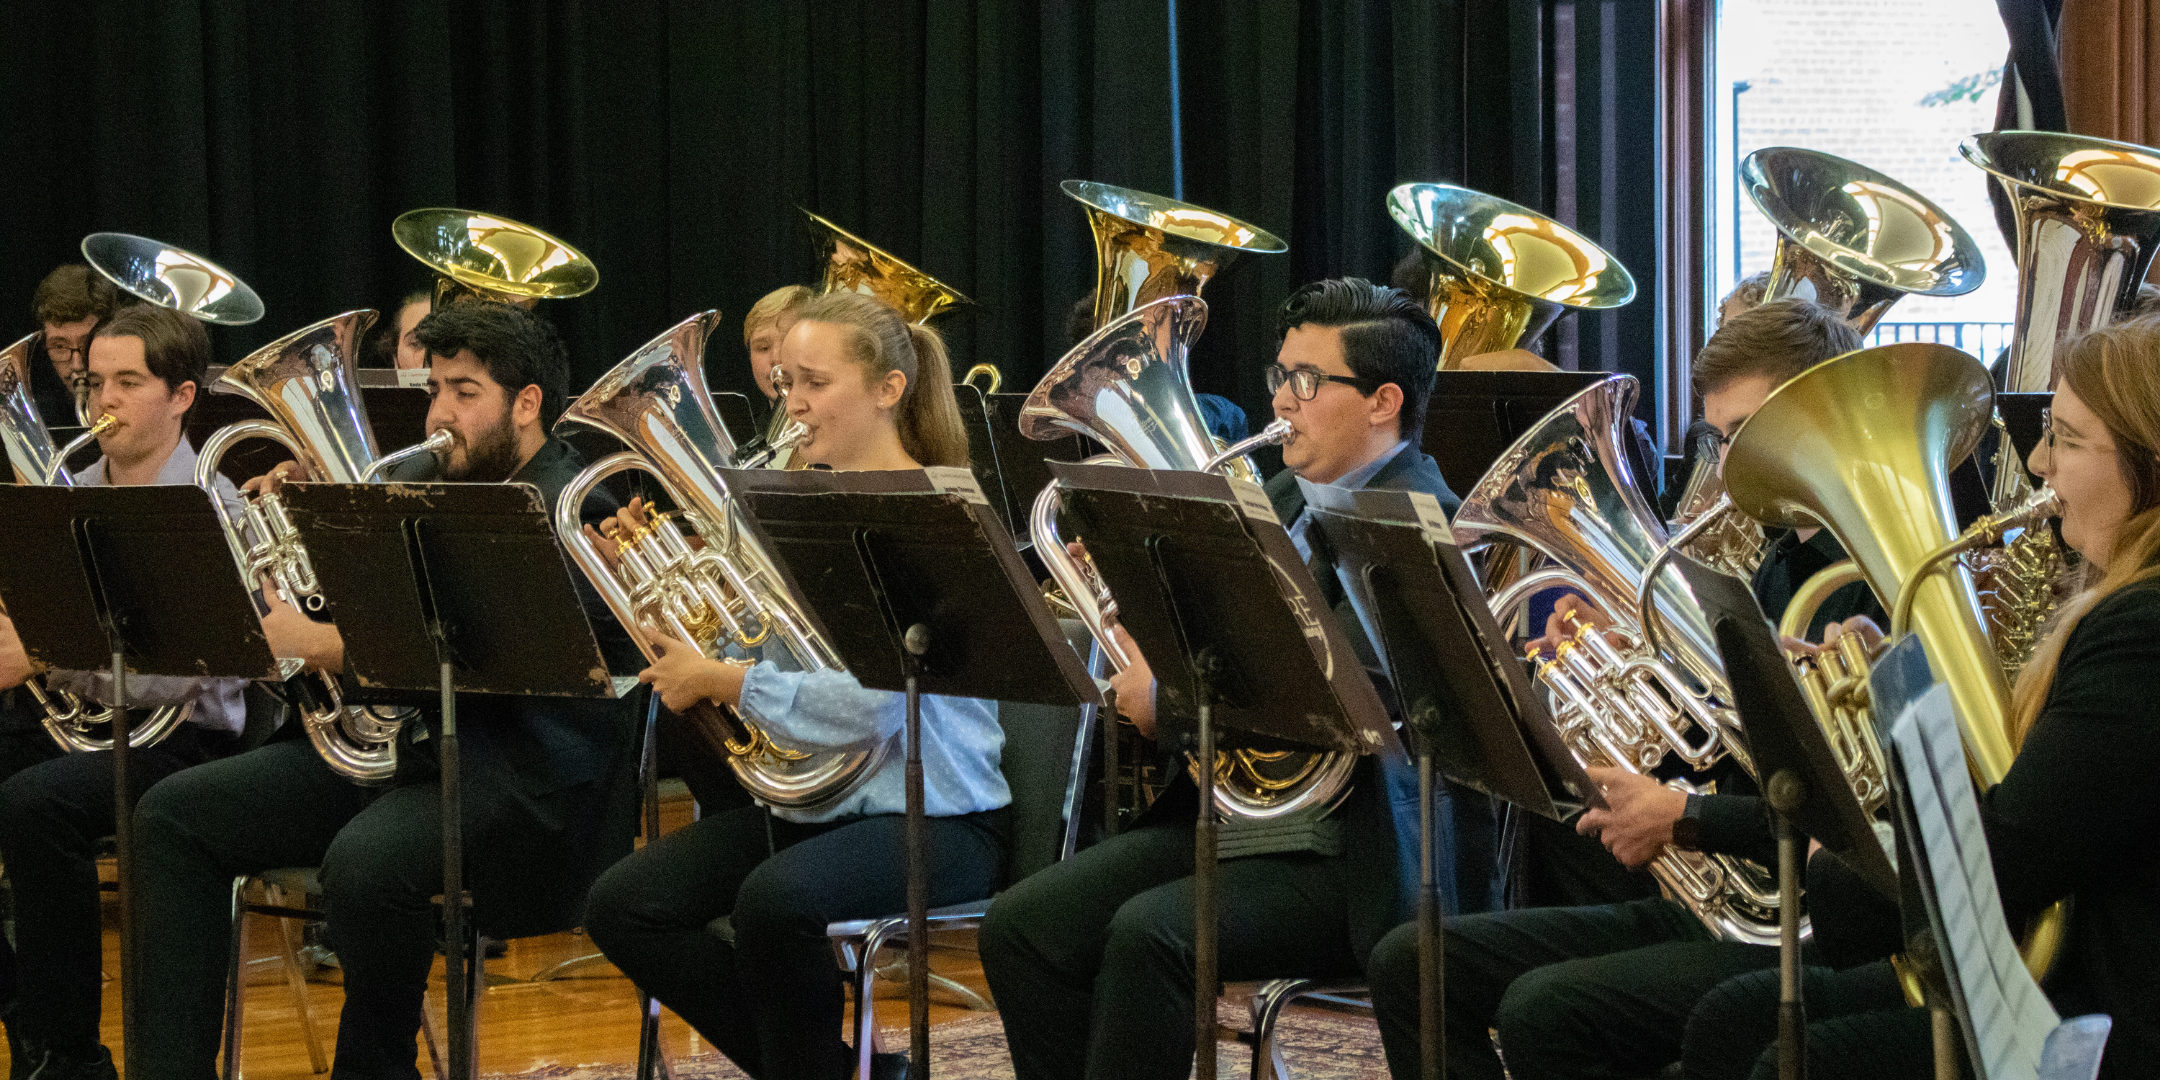 musicians playing euphoniums and tubas